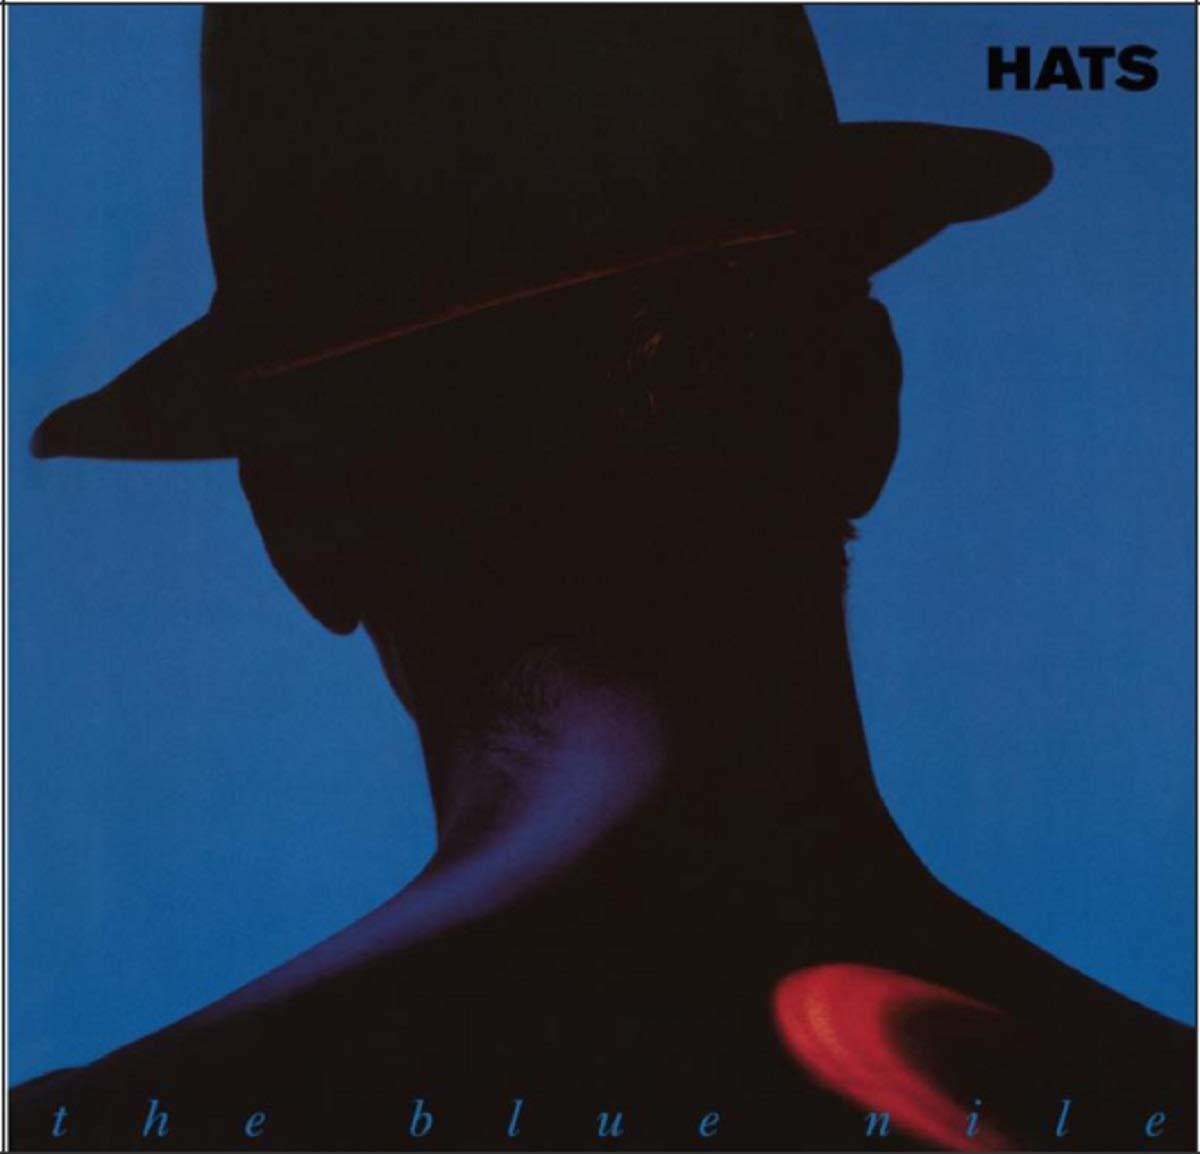 Hats by The Blue Nile image